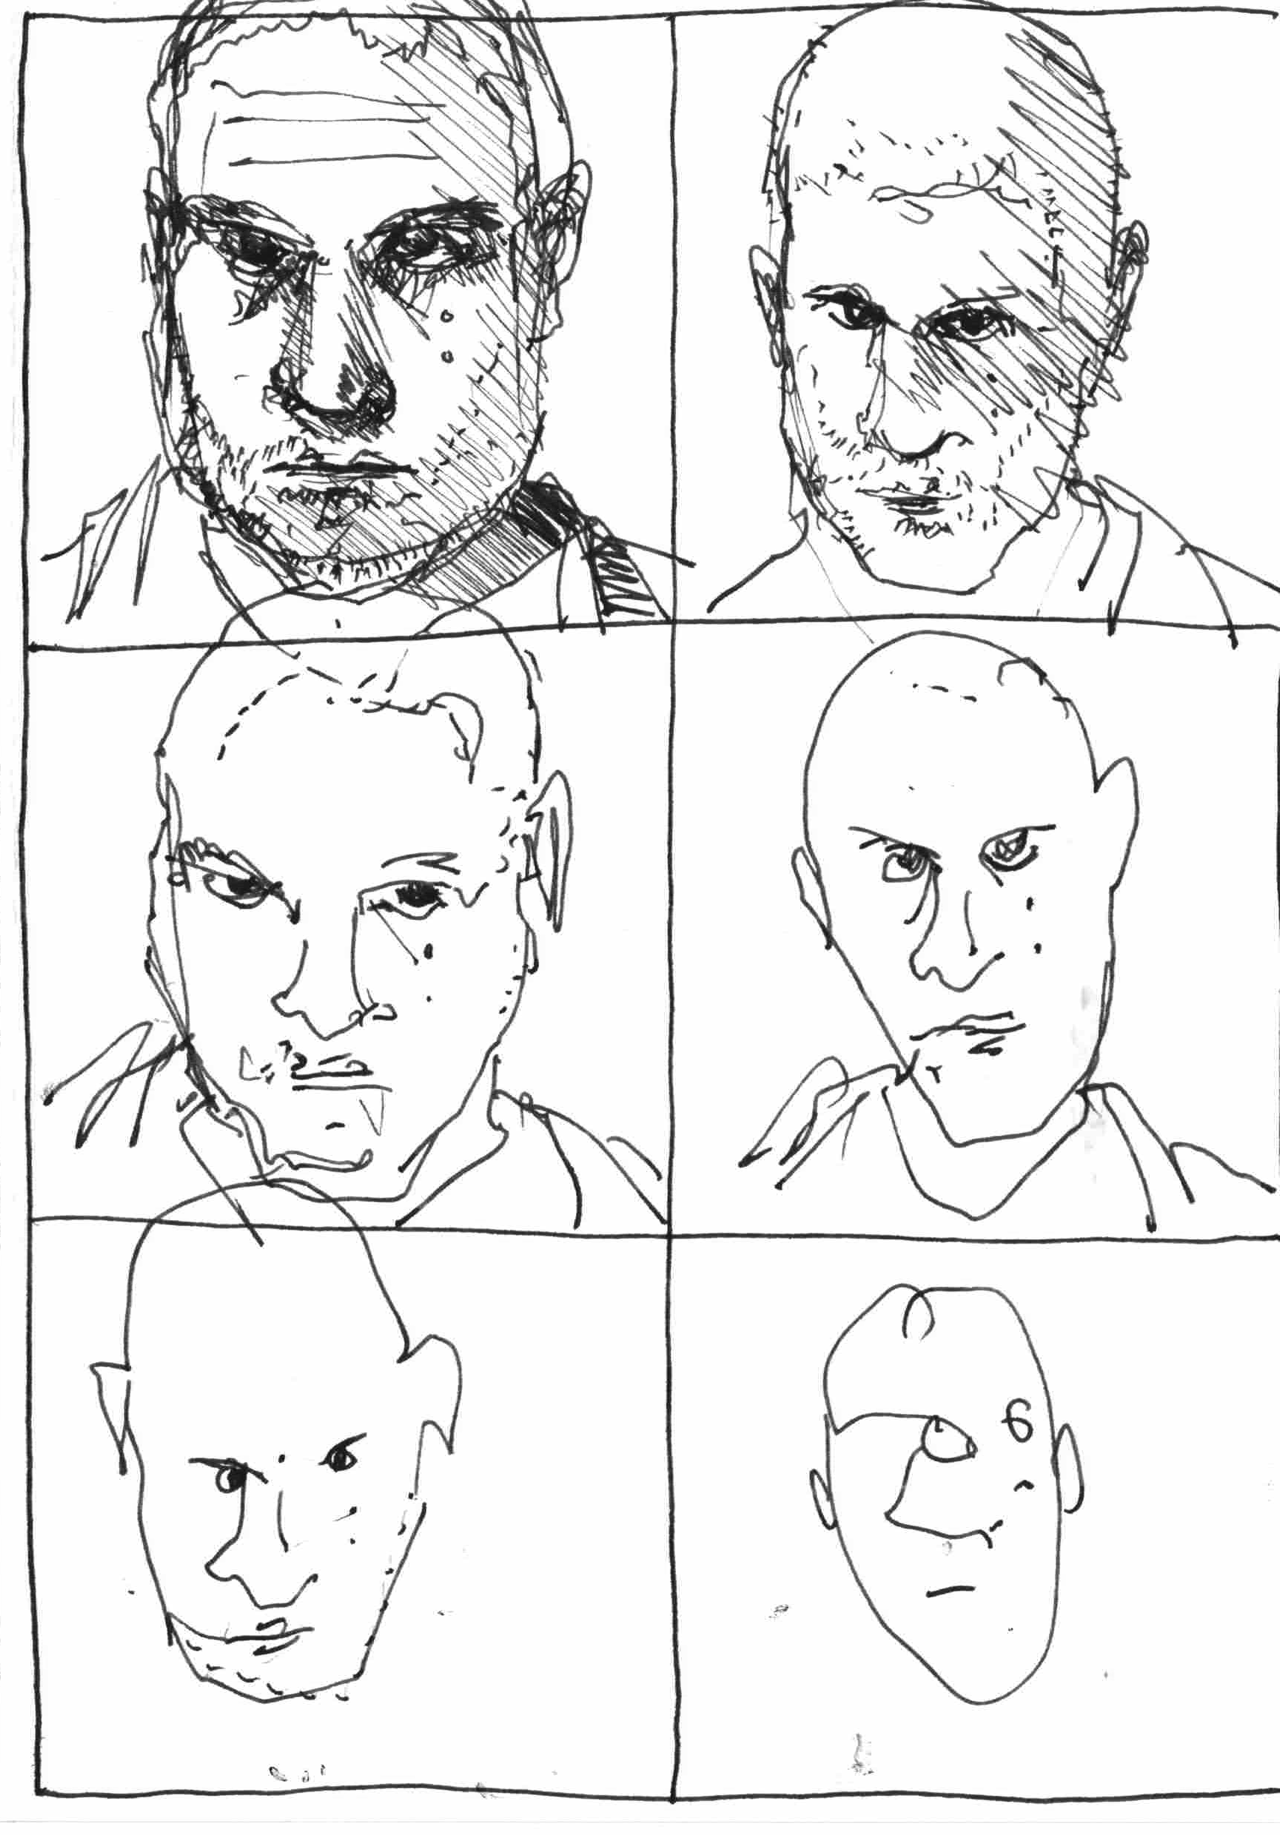 6 drawings of my face